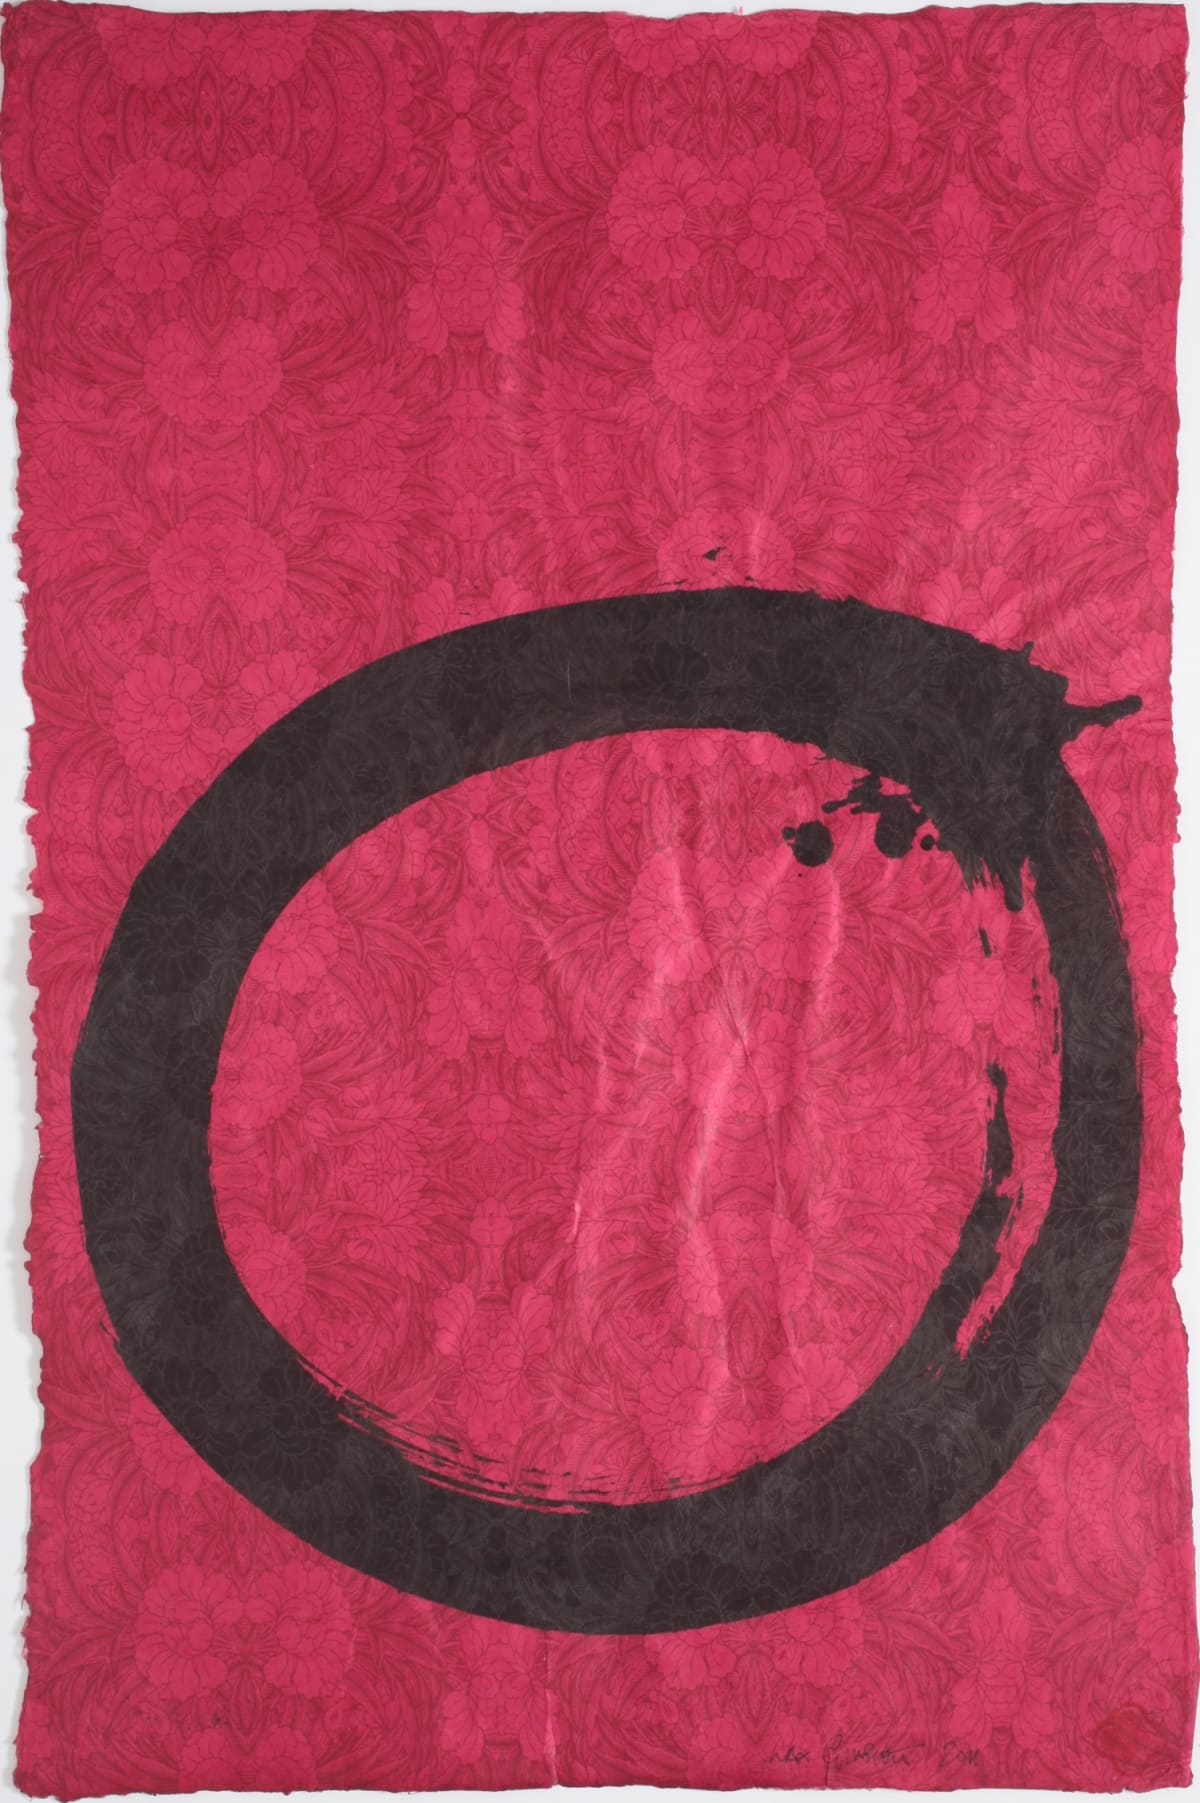 Max GIMBLETT Constant Enso, 2012 Sumi ink on hand made paper 30 x 20 in 76.2 x 50.8 cm